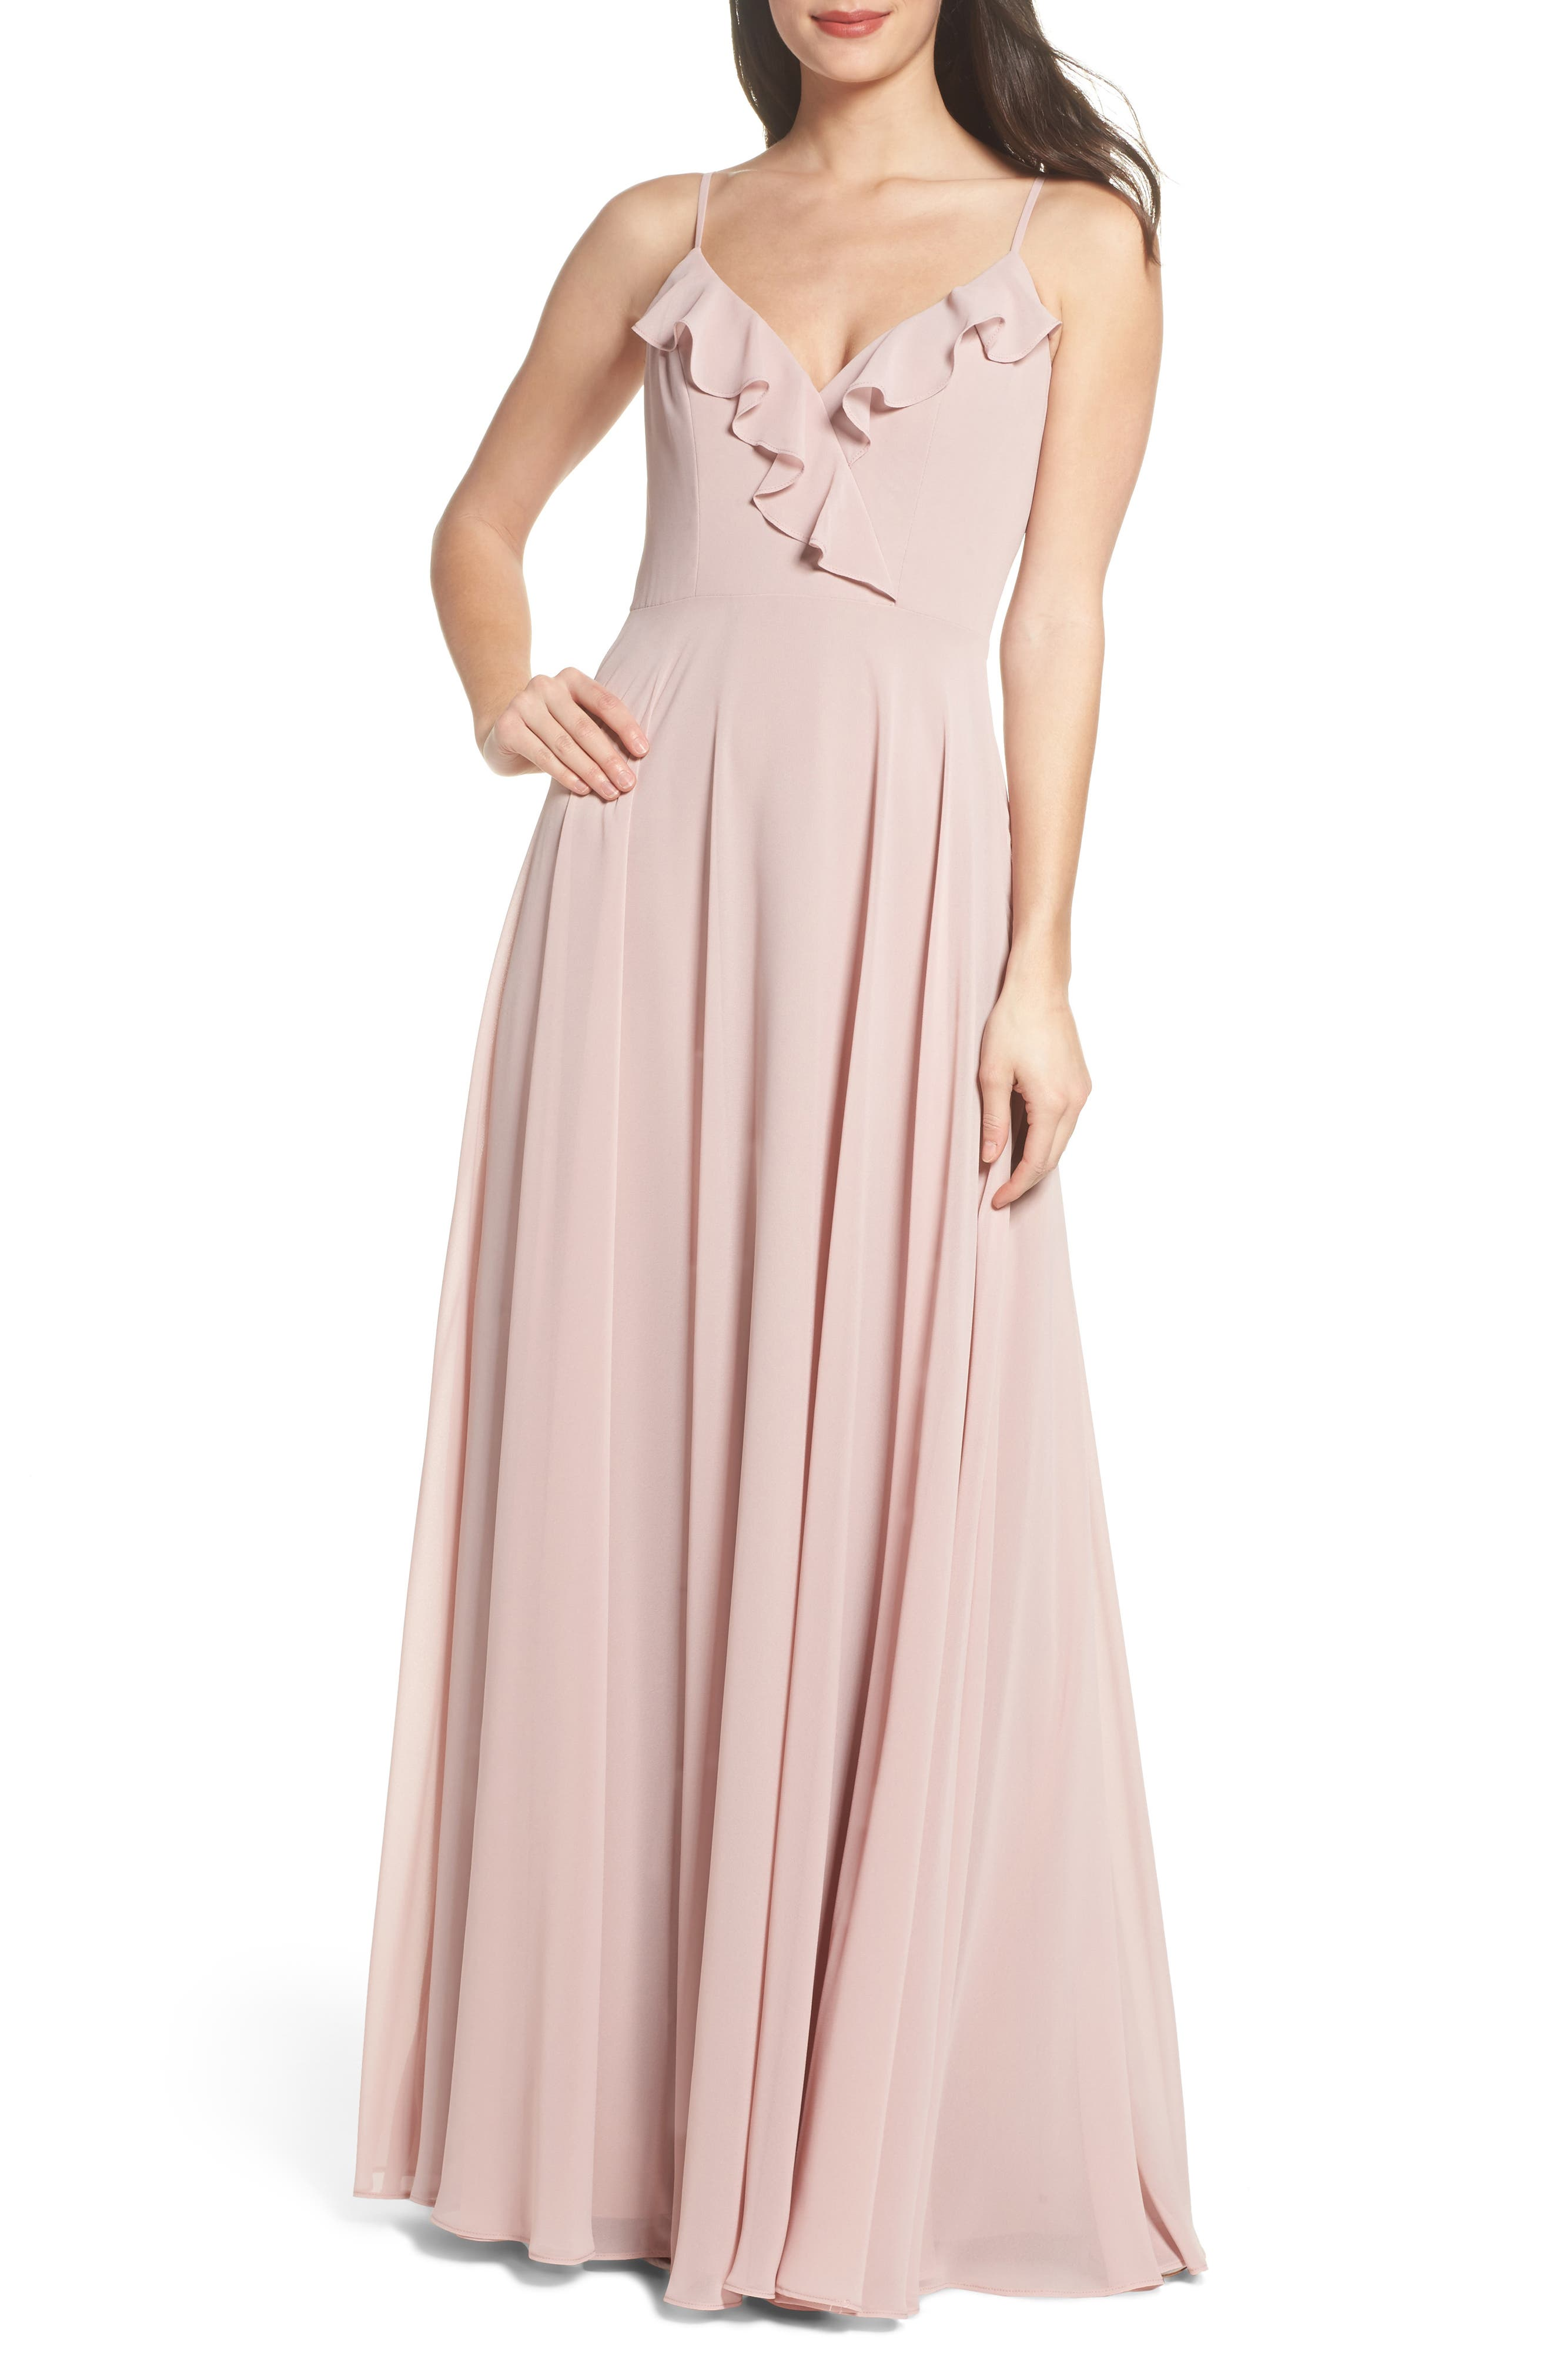 HAYLEY PAIGE OCCASIONS, Ruffle Chiffon Gown, Main thumbnail 1, color, DUSTY ROSE